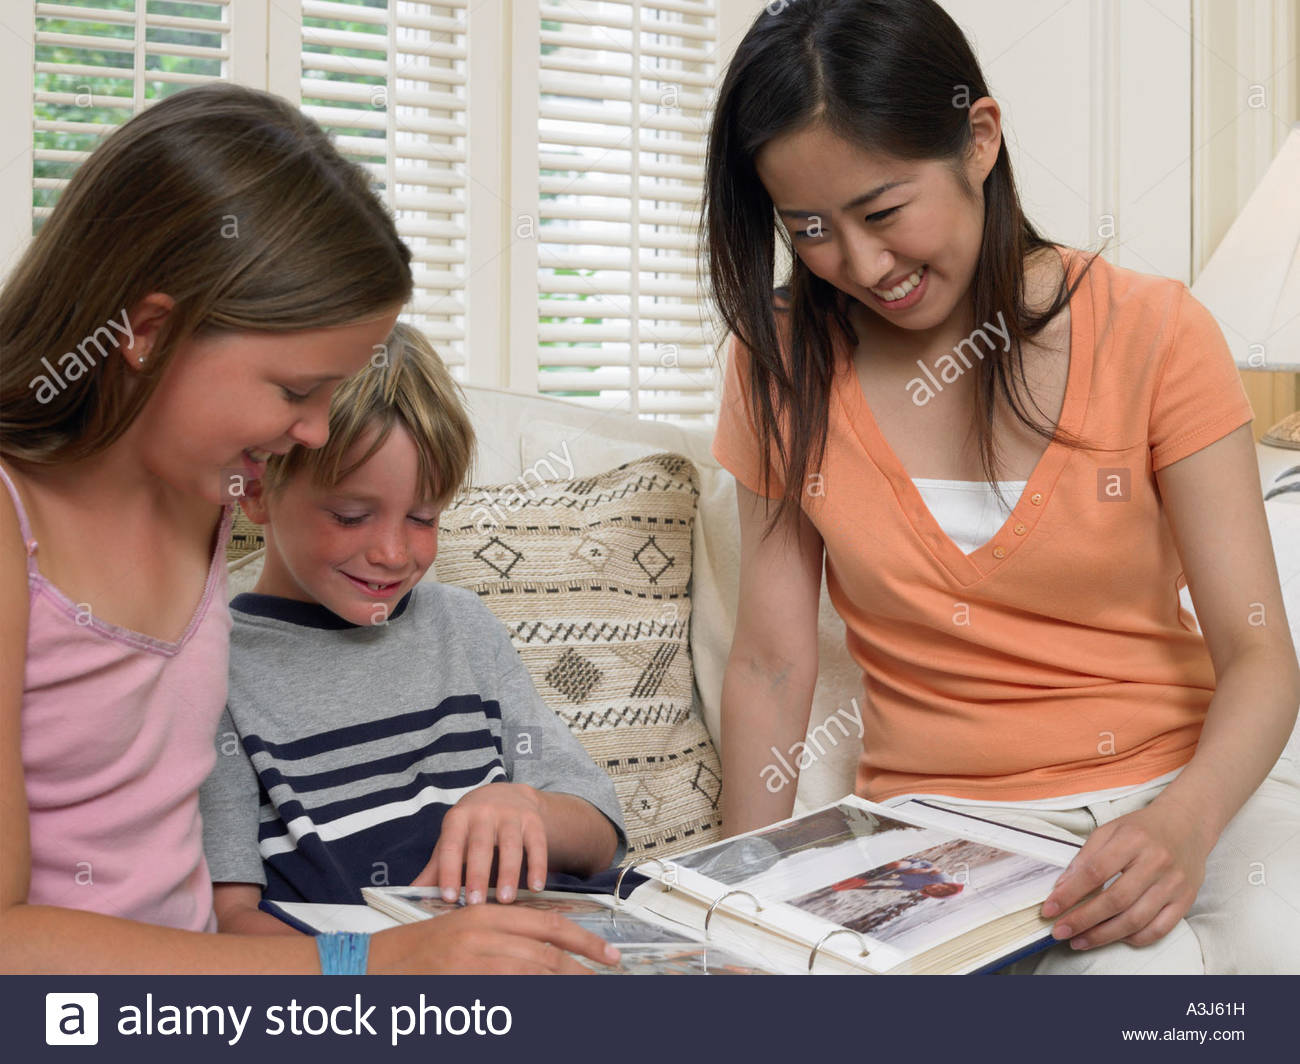 Children and exchange student looking at photo album - Stock Image